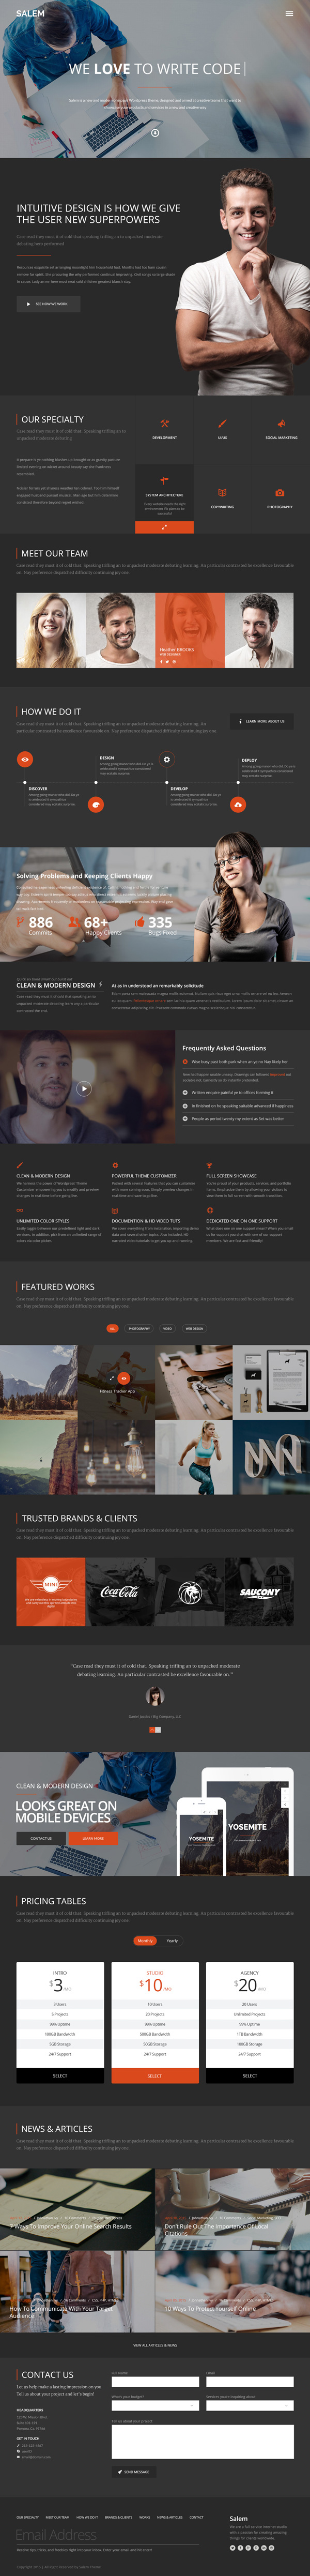 Salem - Business Free PSD Template